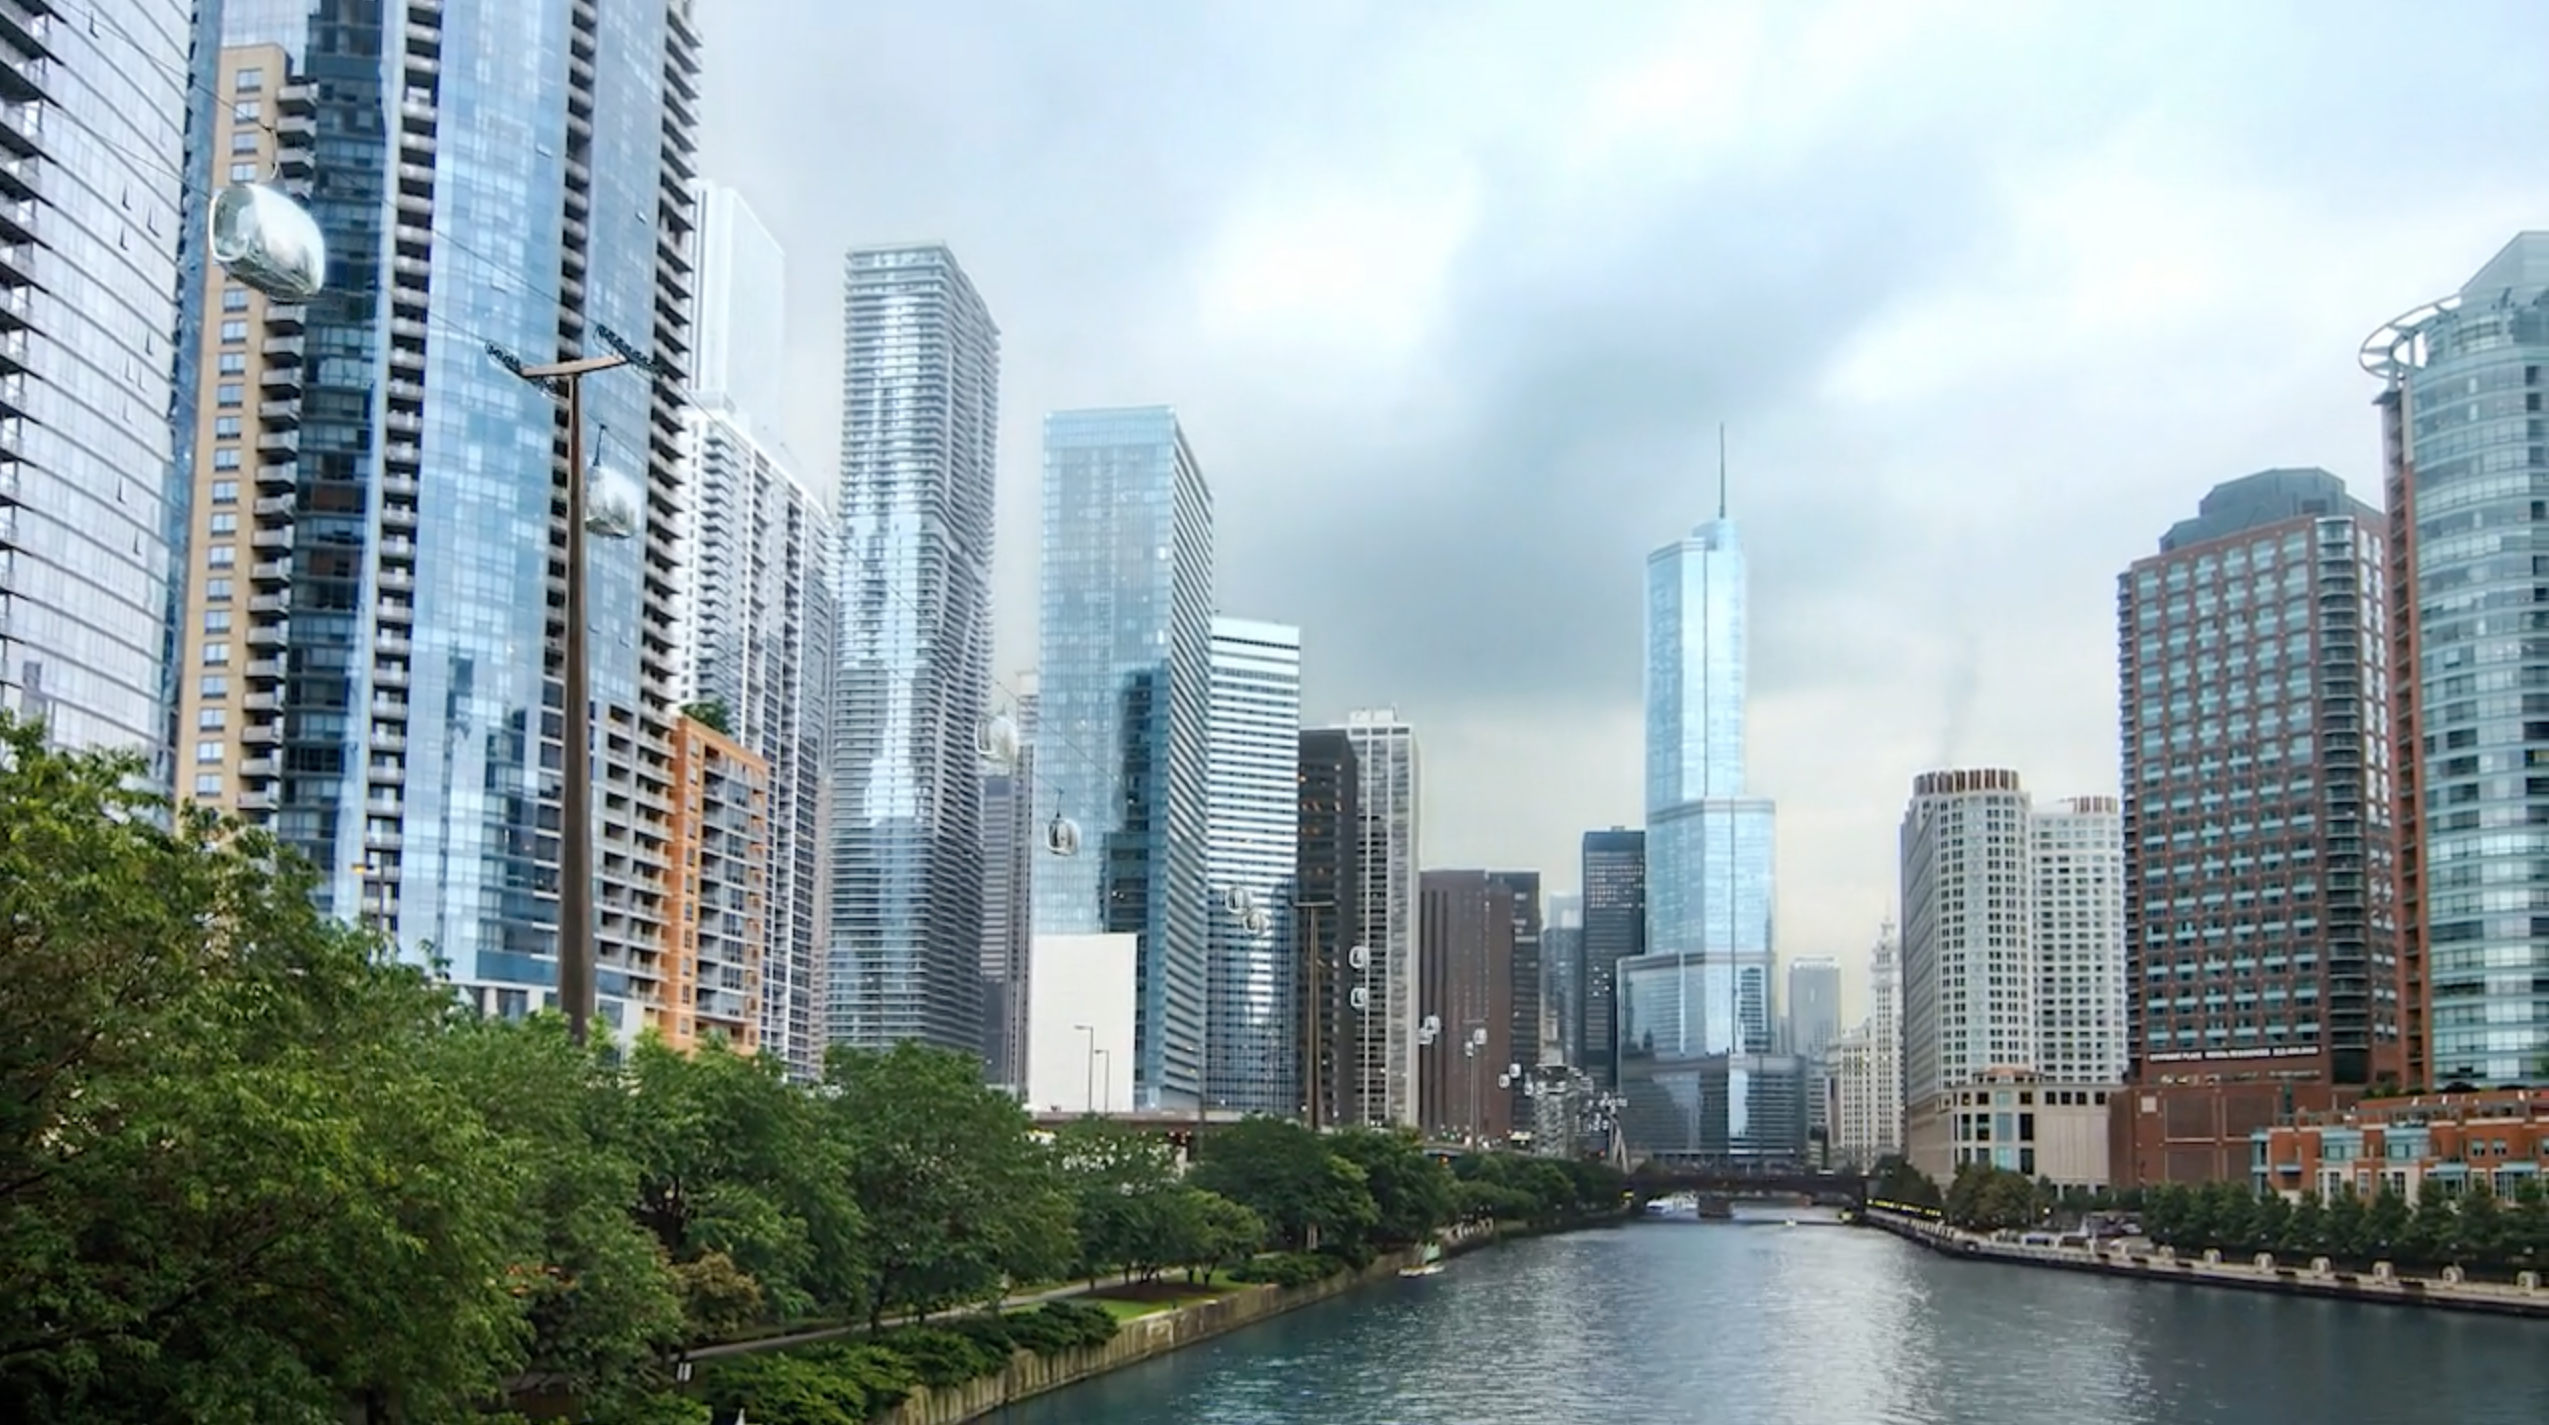 Trump'-s Chicago skyscraper poses challenge for city'-s tour guides ...